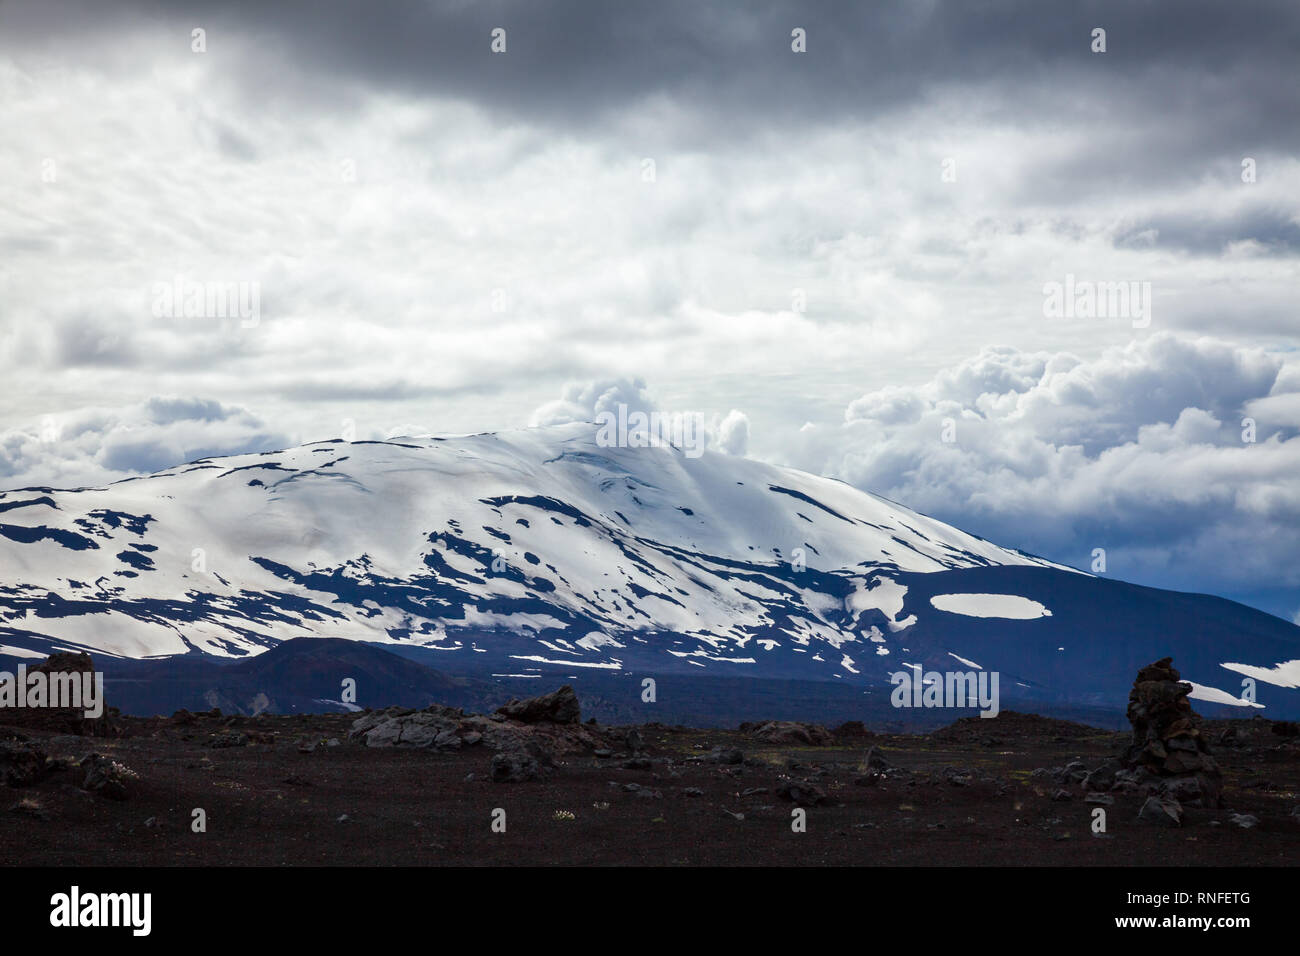 Dramatic sky over snow capped Hekla (Hecla) stratovolcano, one of Icelands most active volcanoes and popular tourist attraction in Southwestern Icelan - Stock Image